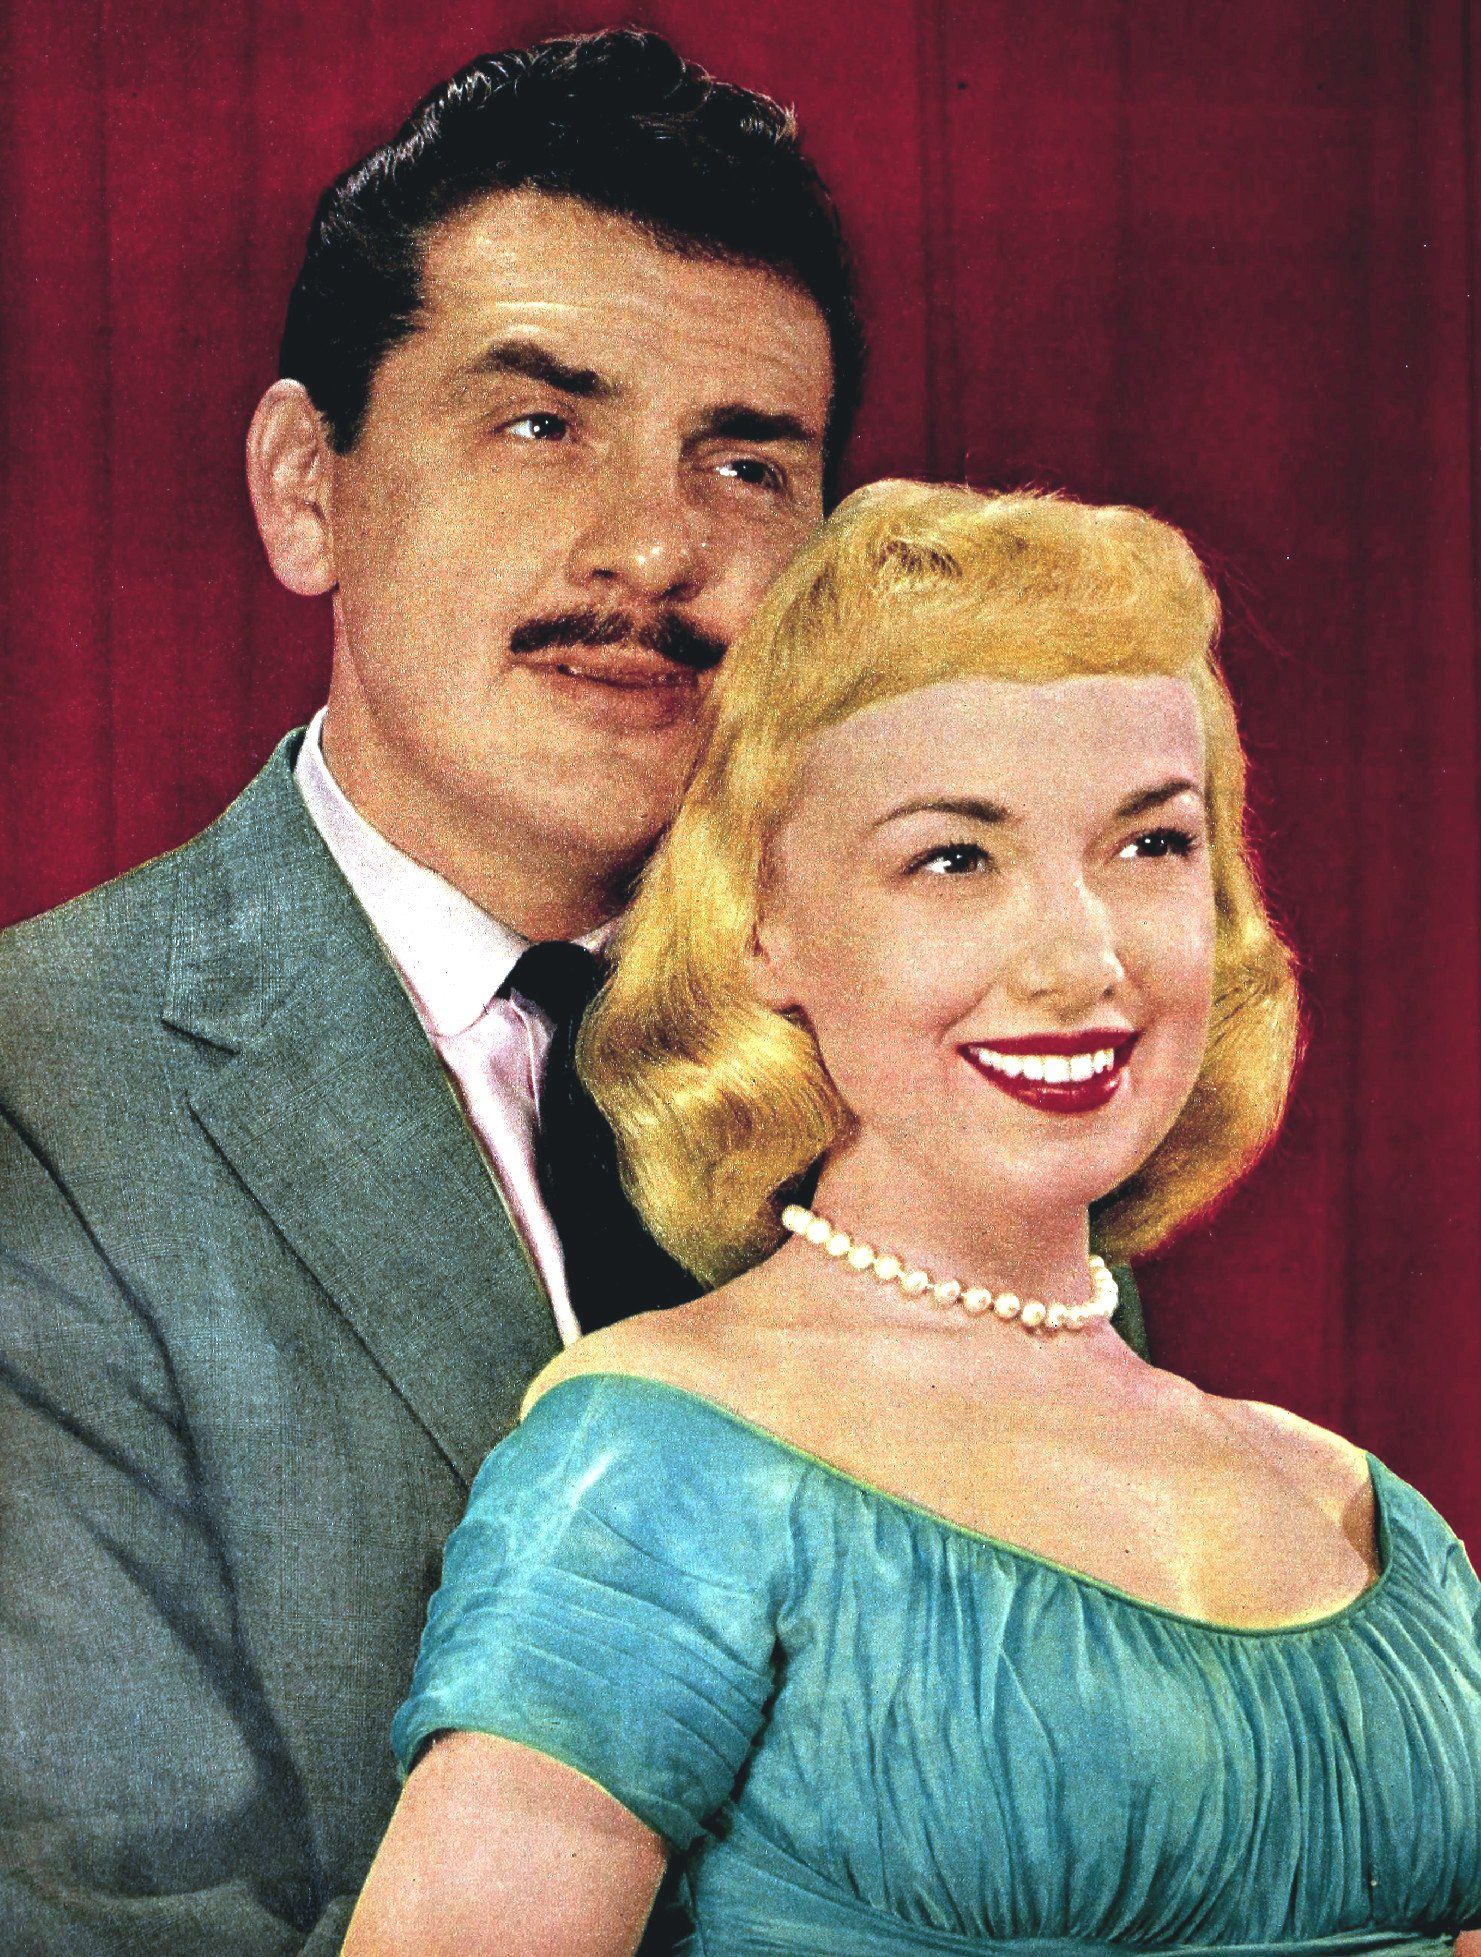 Ernie Kovacs et son épouse Edie Adams en 1956. | Source: Wikimedia Commons